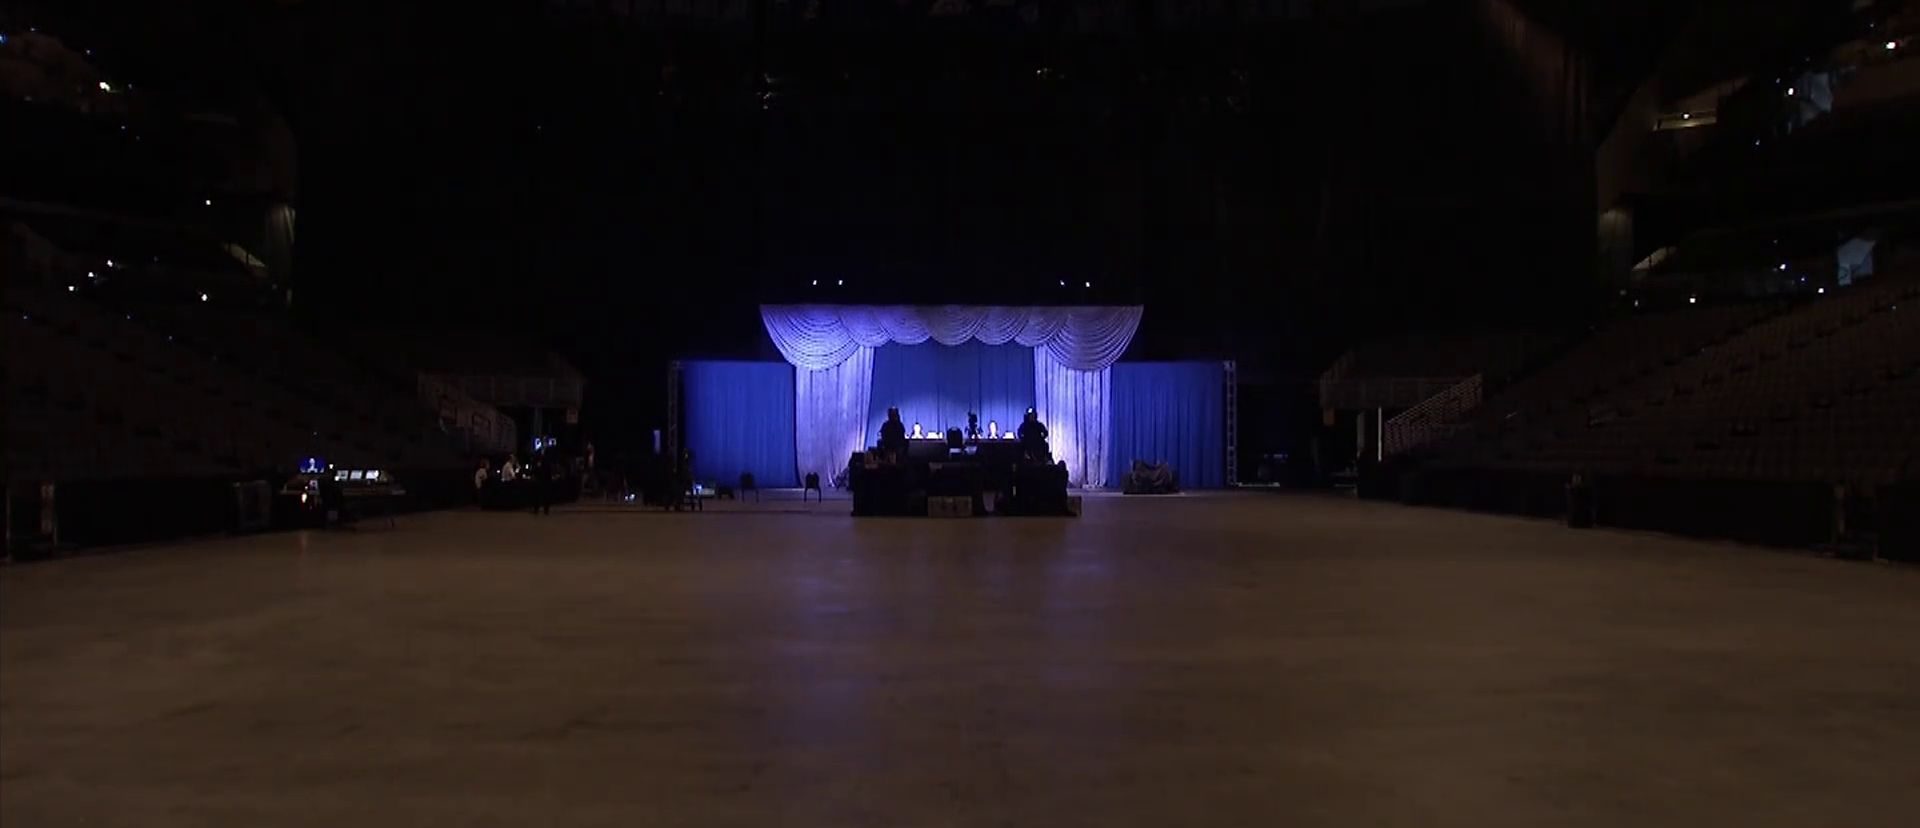 Berkshire Hathaway's 2020 annual shareholders meeting in Omaha was held in a large arena but without an audience.